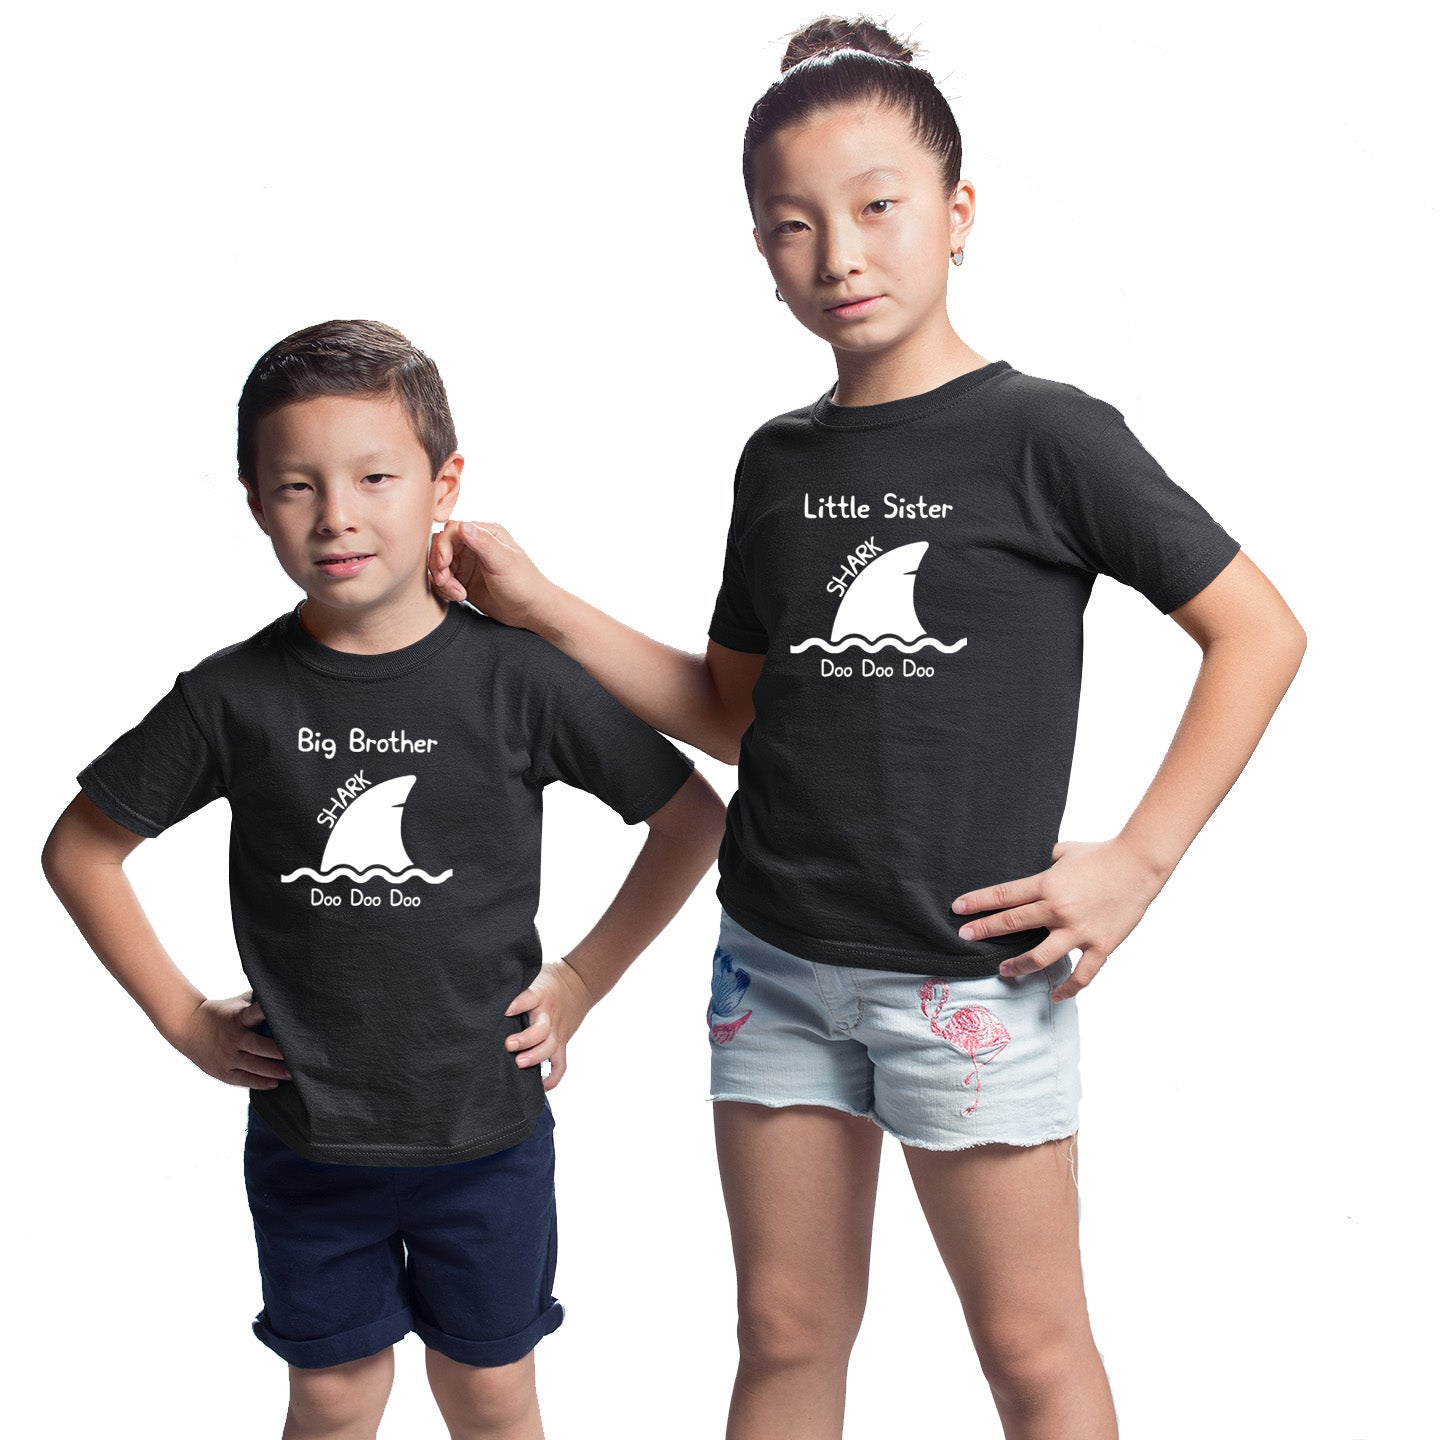 Sprinklecart Big Brother Shark Doo Doo Doo Little Sister Shark Doo Doo Doo Matching T Shirt (Black)